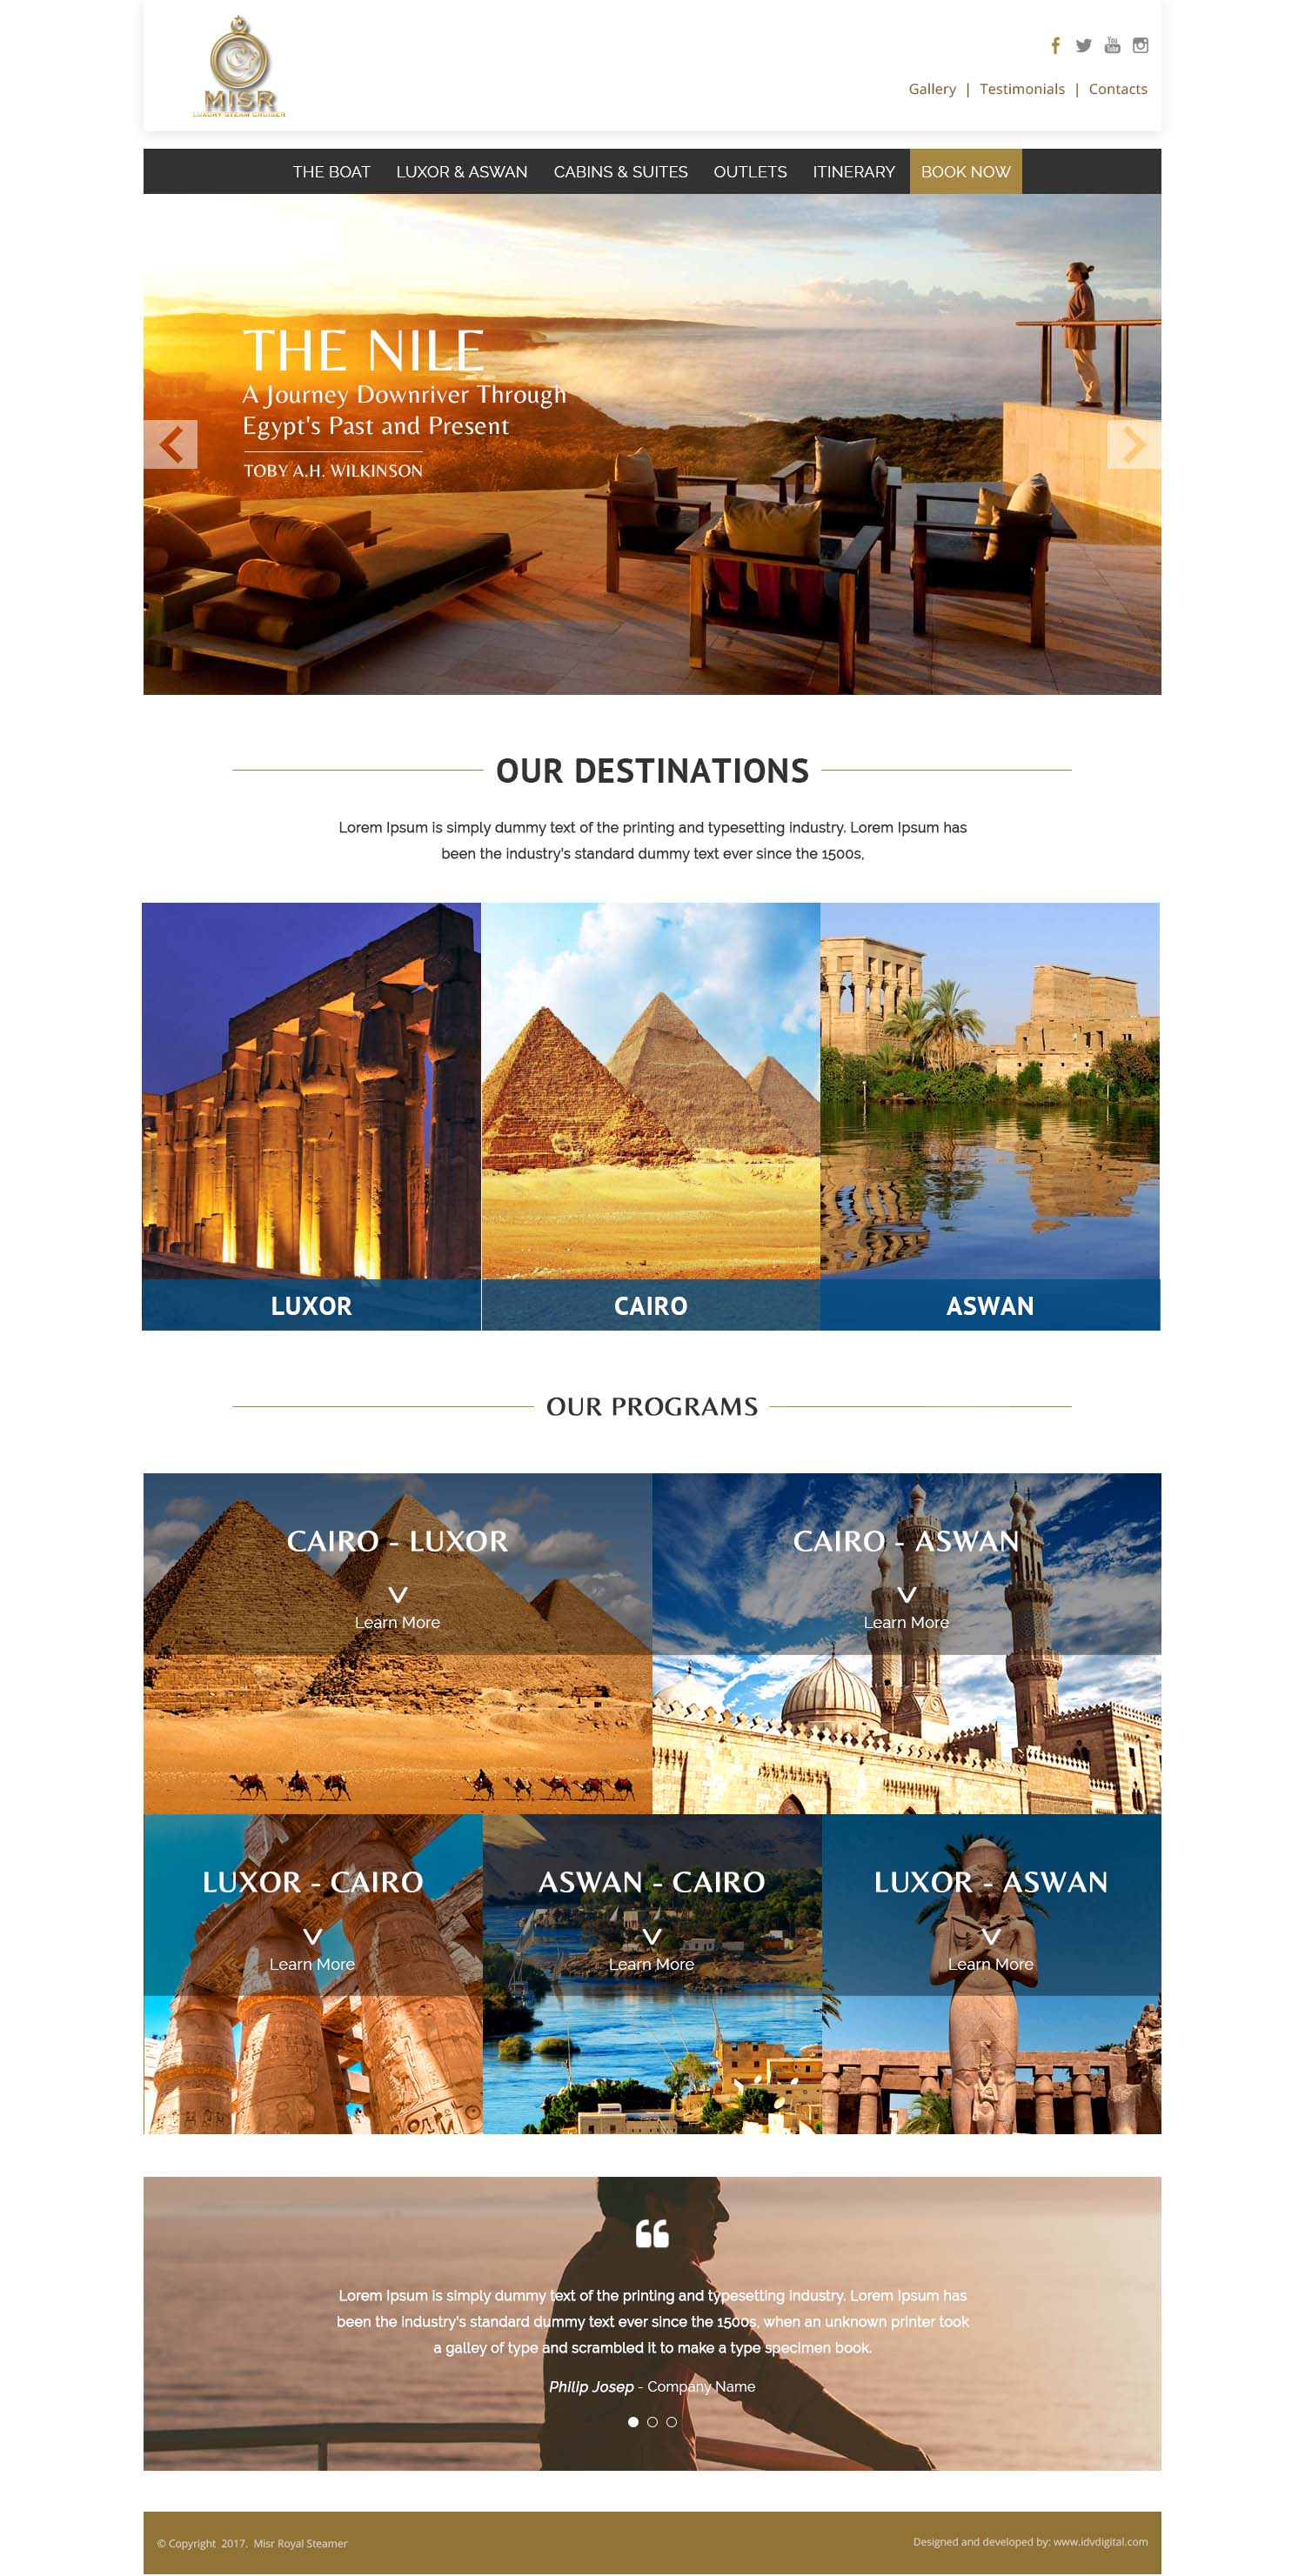 SS Misr-web design Egypt-web design Doha